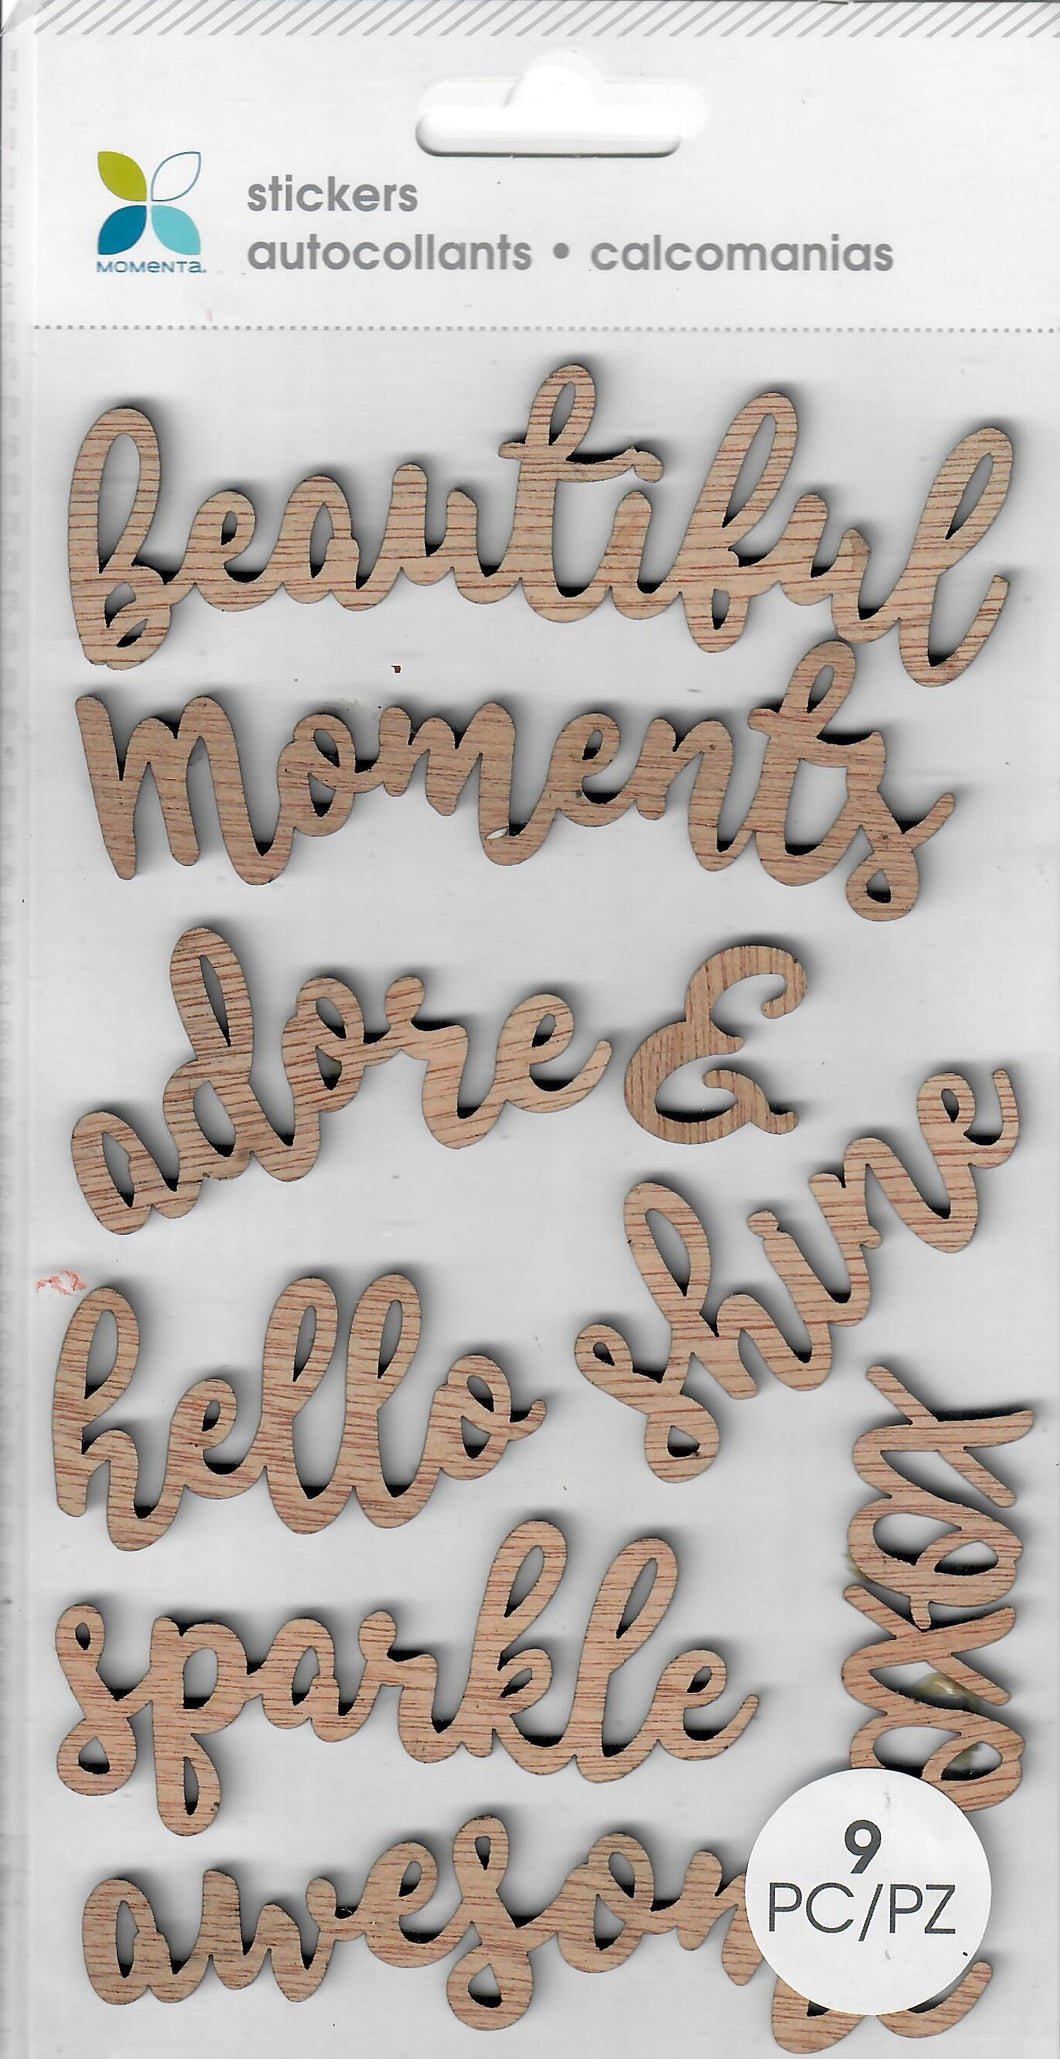 words - Momenta Dimensional stickers - Inspirational words - wood